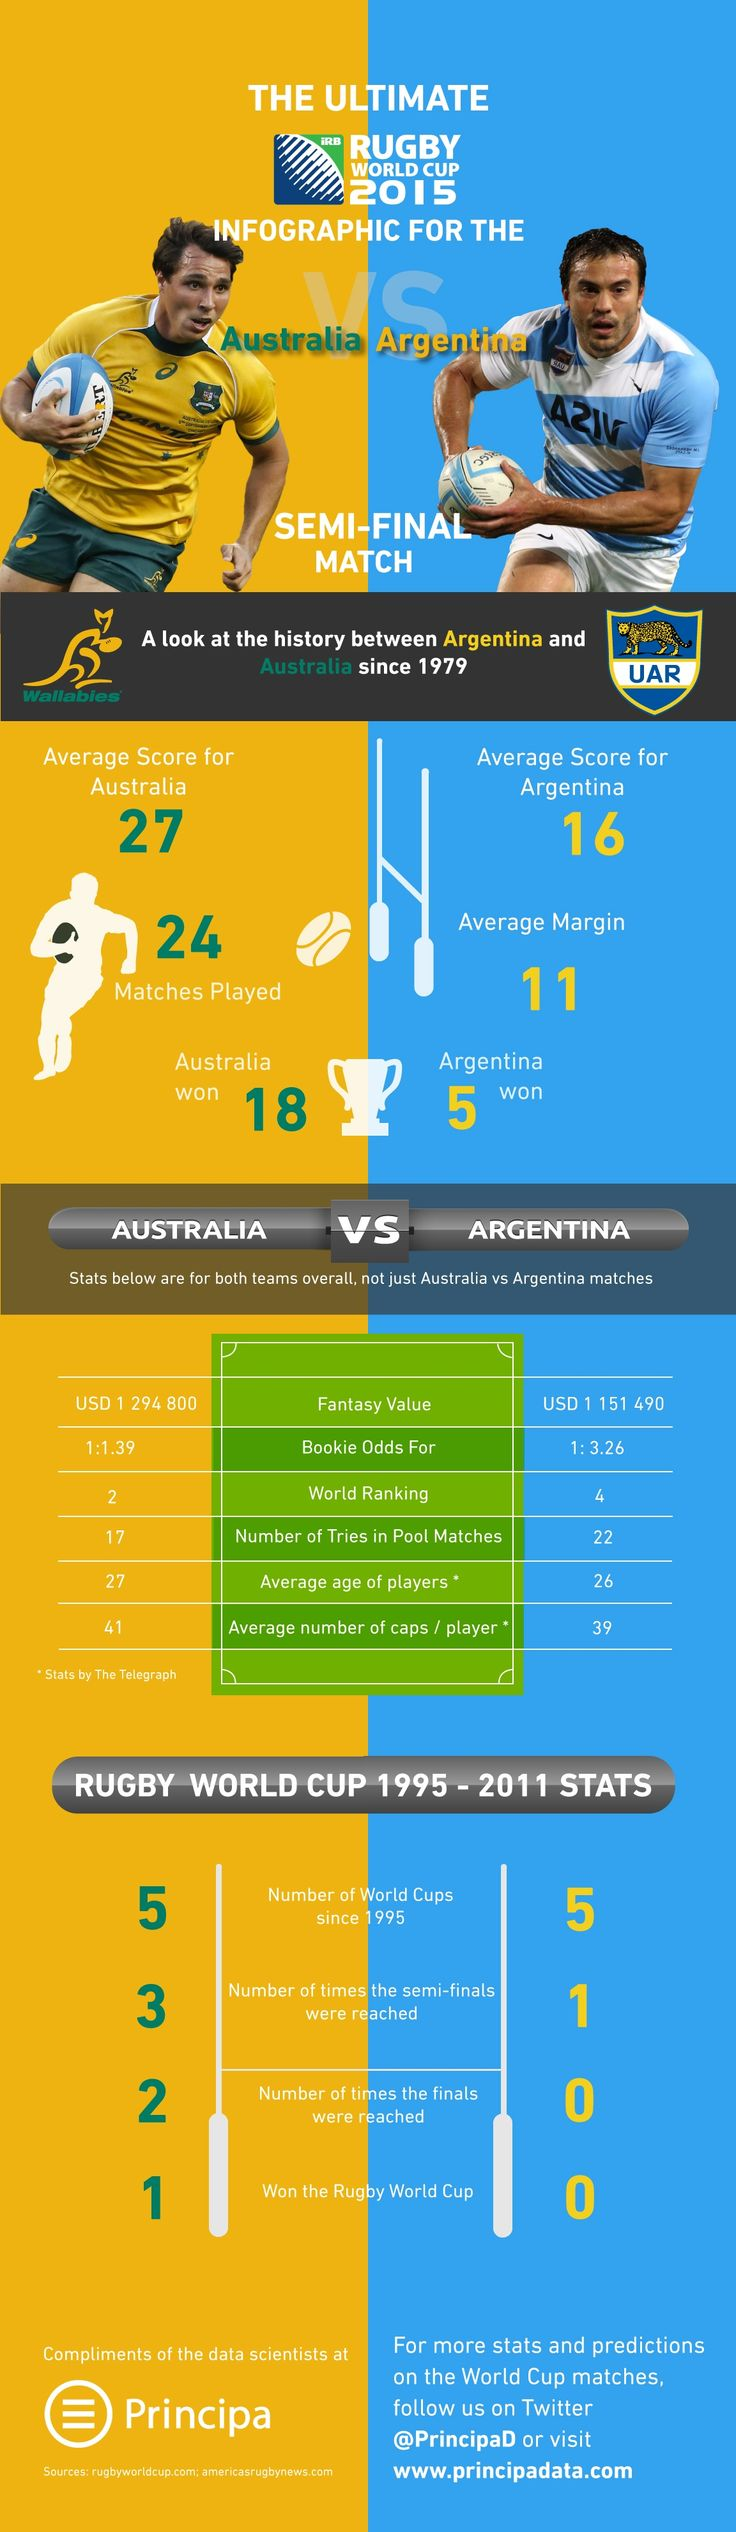 Rugby World Cup 2015: Infographic for the Australia vs Argentina Semi-Final Match